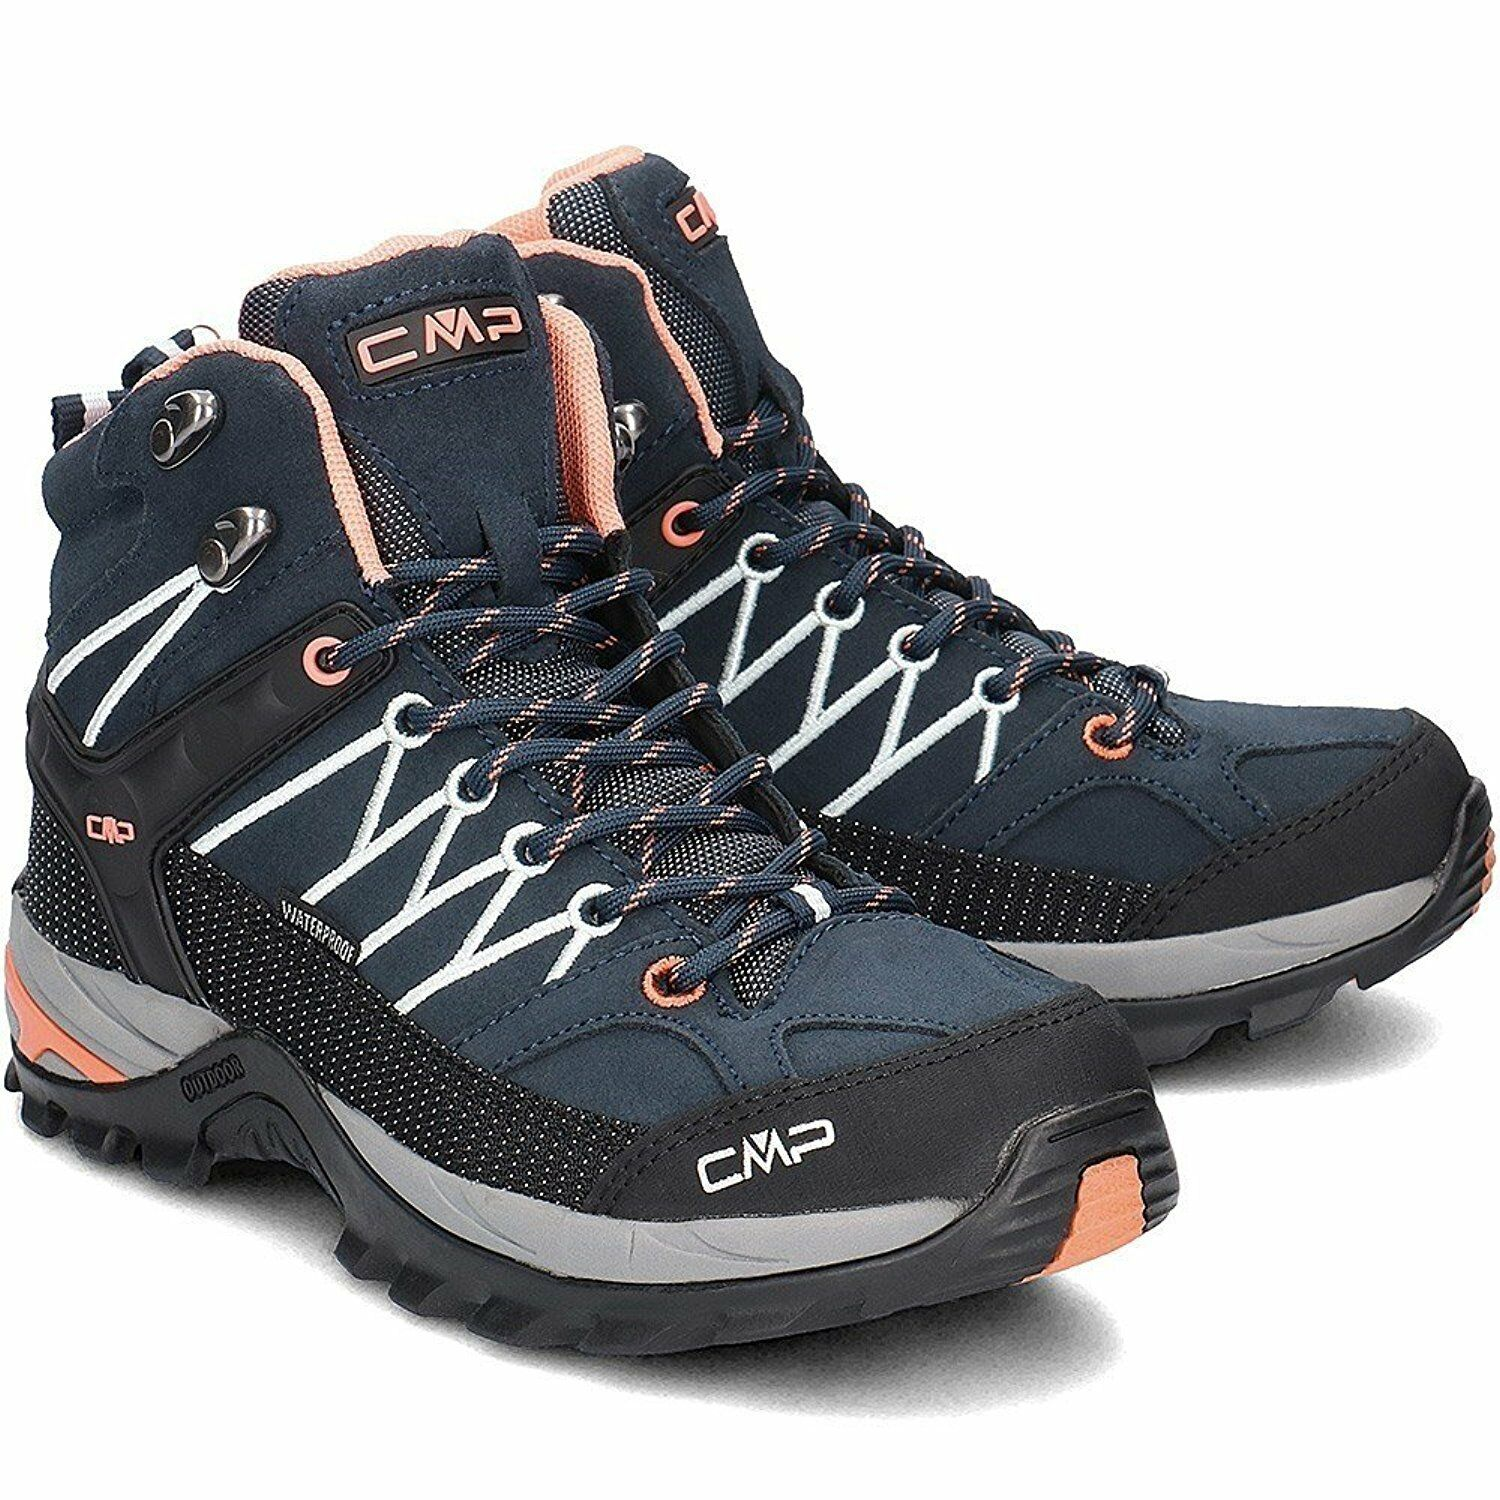 CMP Rigel Mid WMN Hiking shoes Waterproof   59,00  outlet online